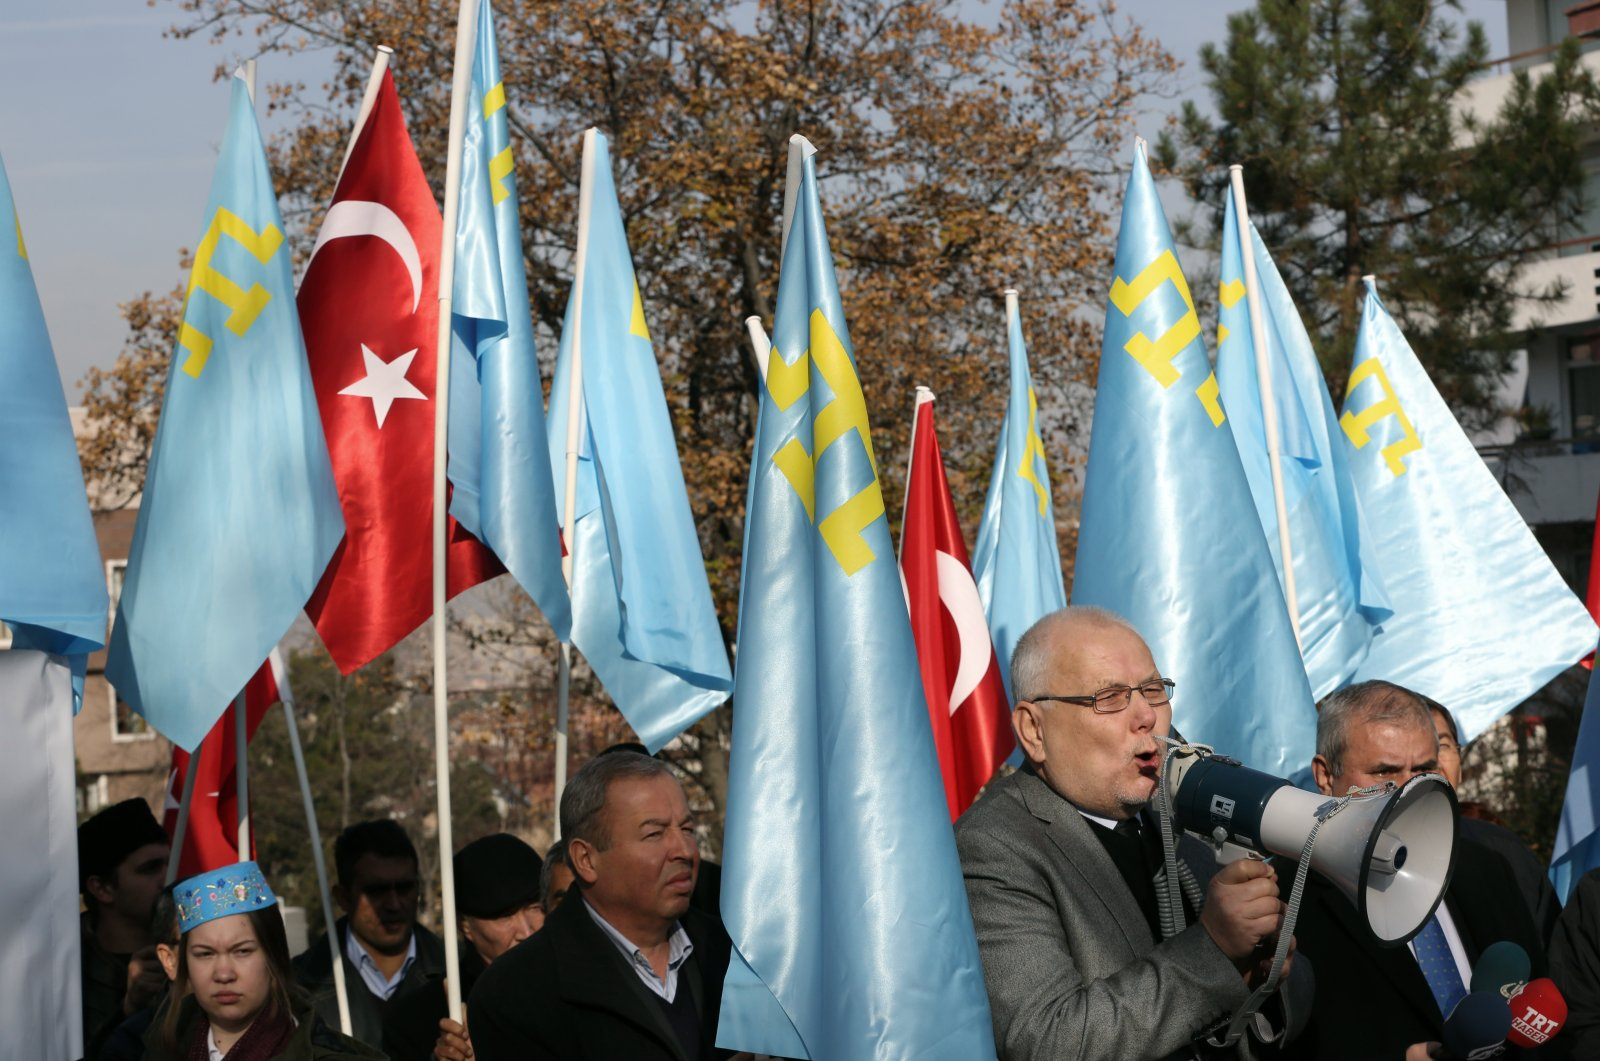 Crimean Tatars living in Turkey stage a protest outside the Russian embassy in Ankara, Turkey, Dec. 10, 2015. (AP Photo)